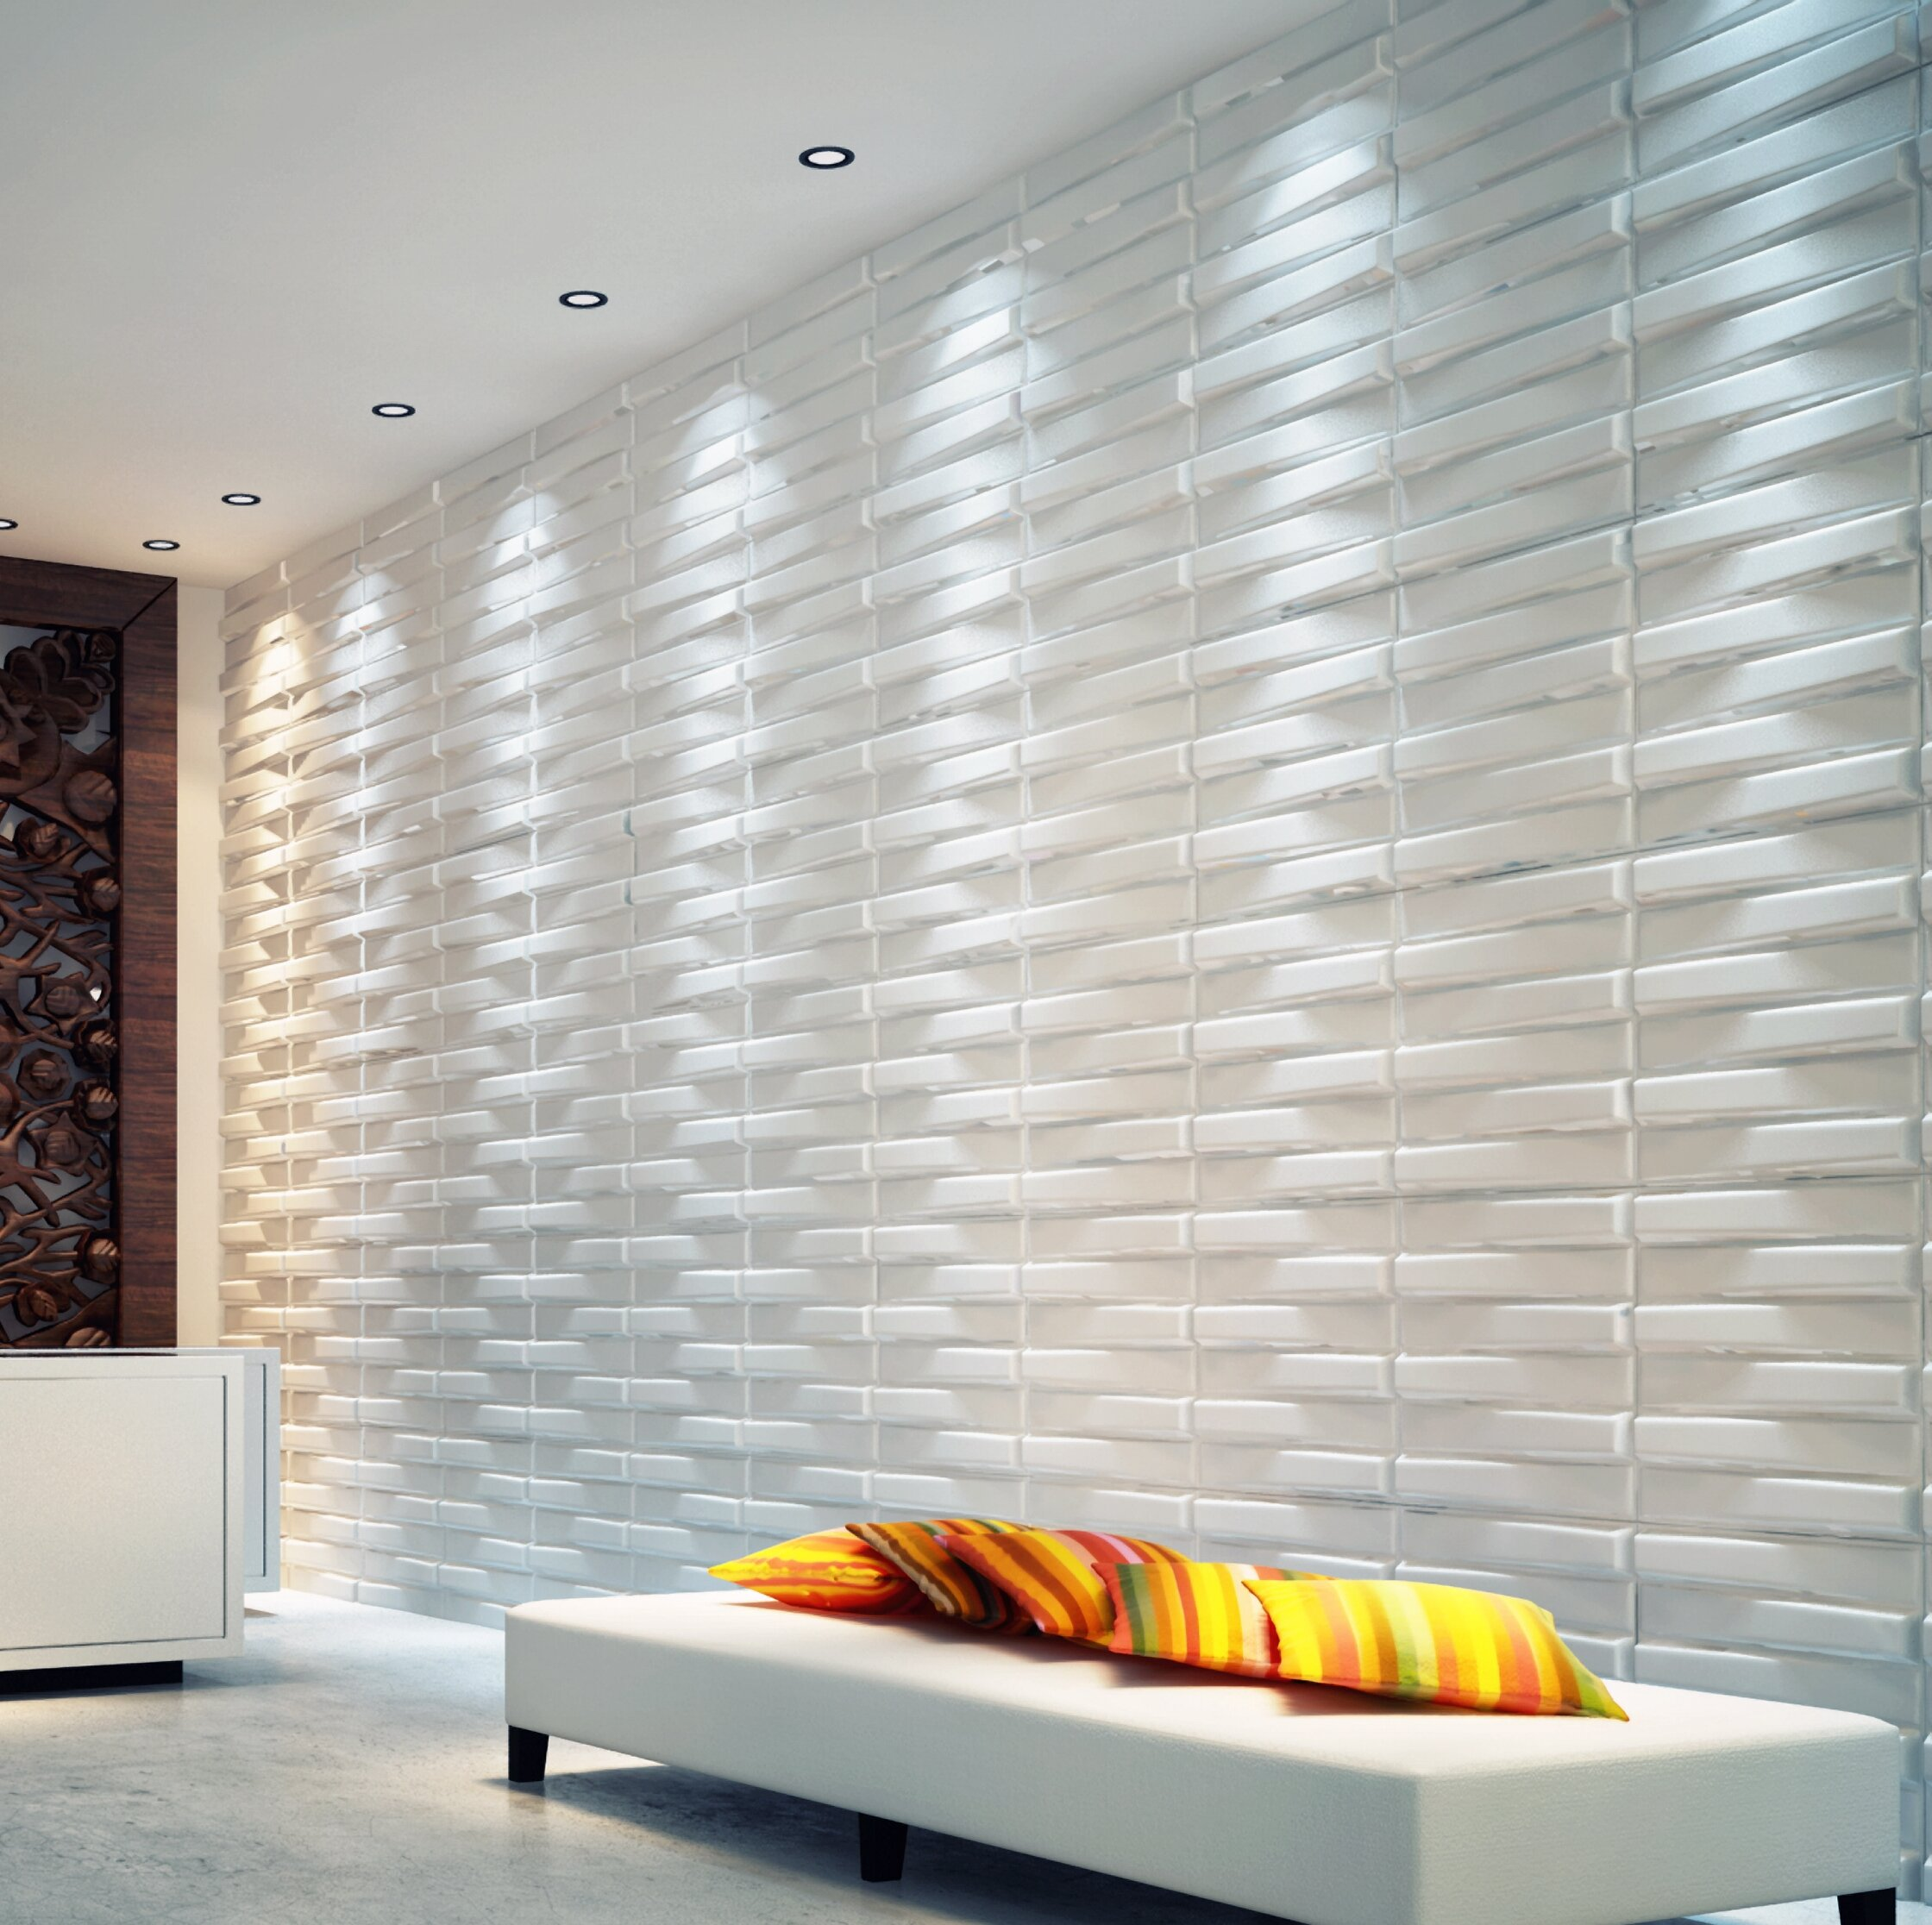 Orren Ellis Hinsdale 19 7 X 19 7 Vinyl Wall Paneling In White Wayfair